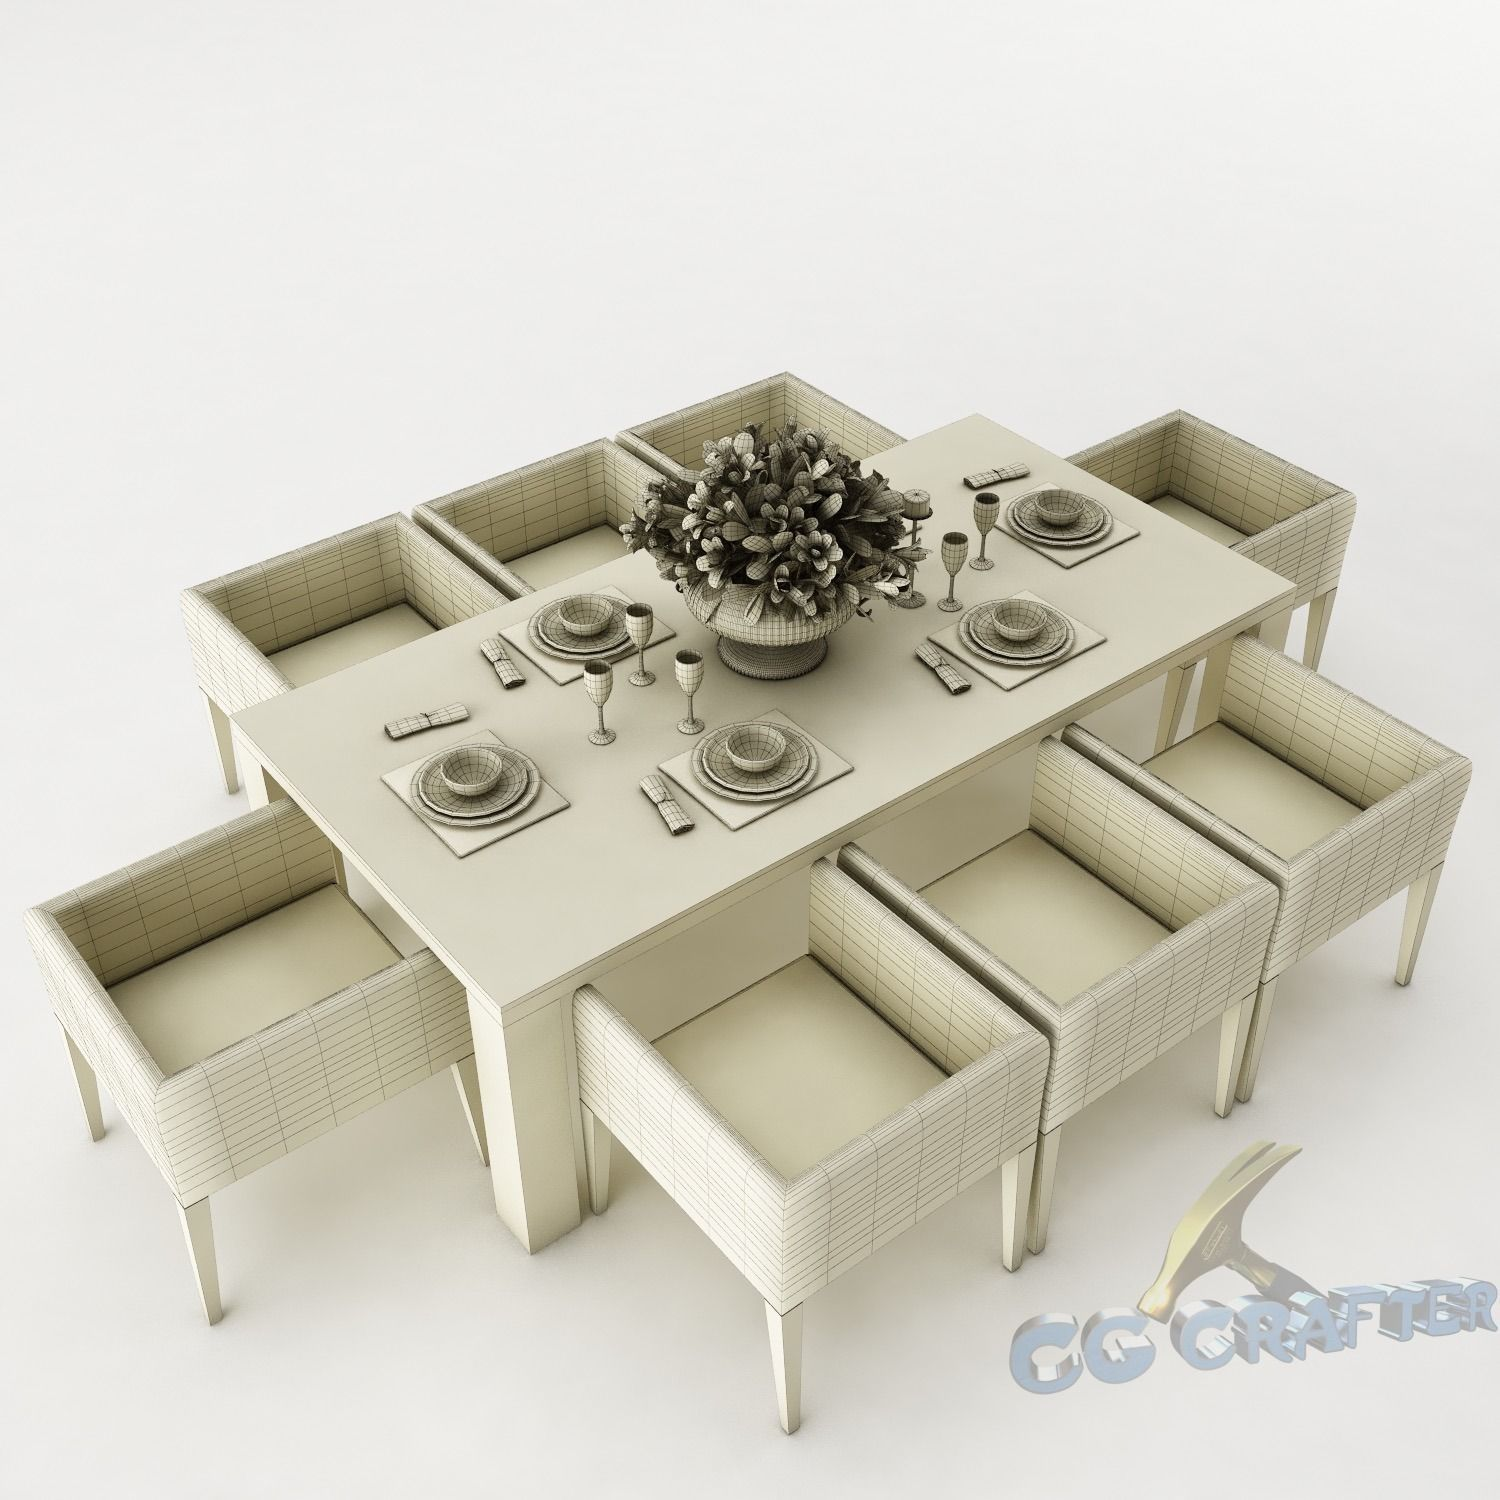 Dining table set 43 3d model max obj 3ds fbx mtl for Dining room table 3ds max